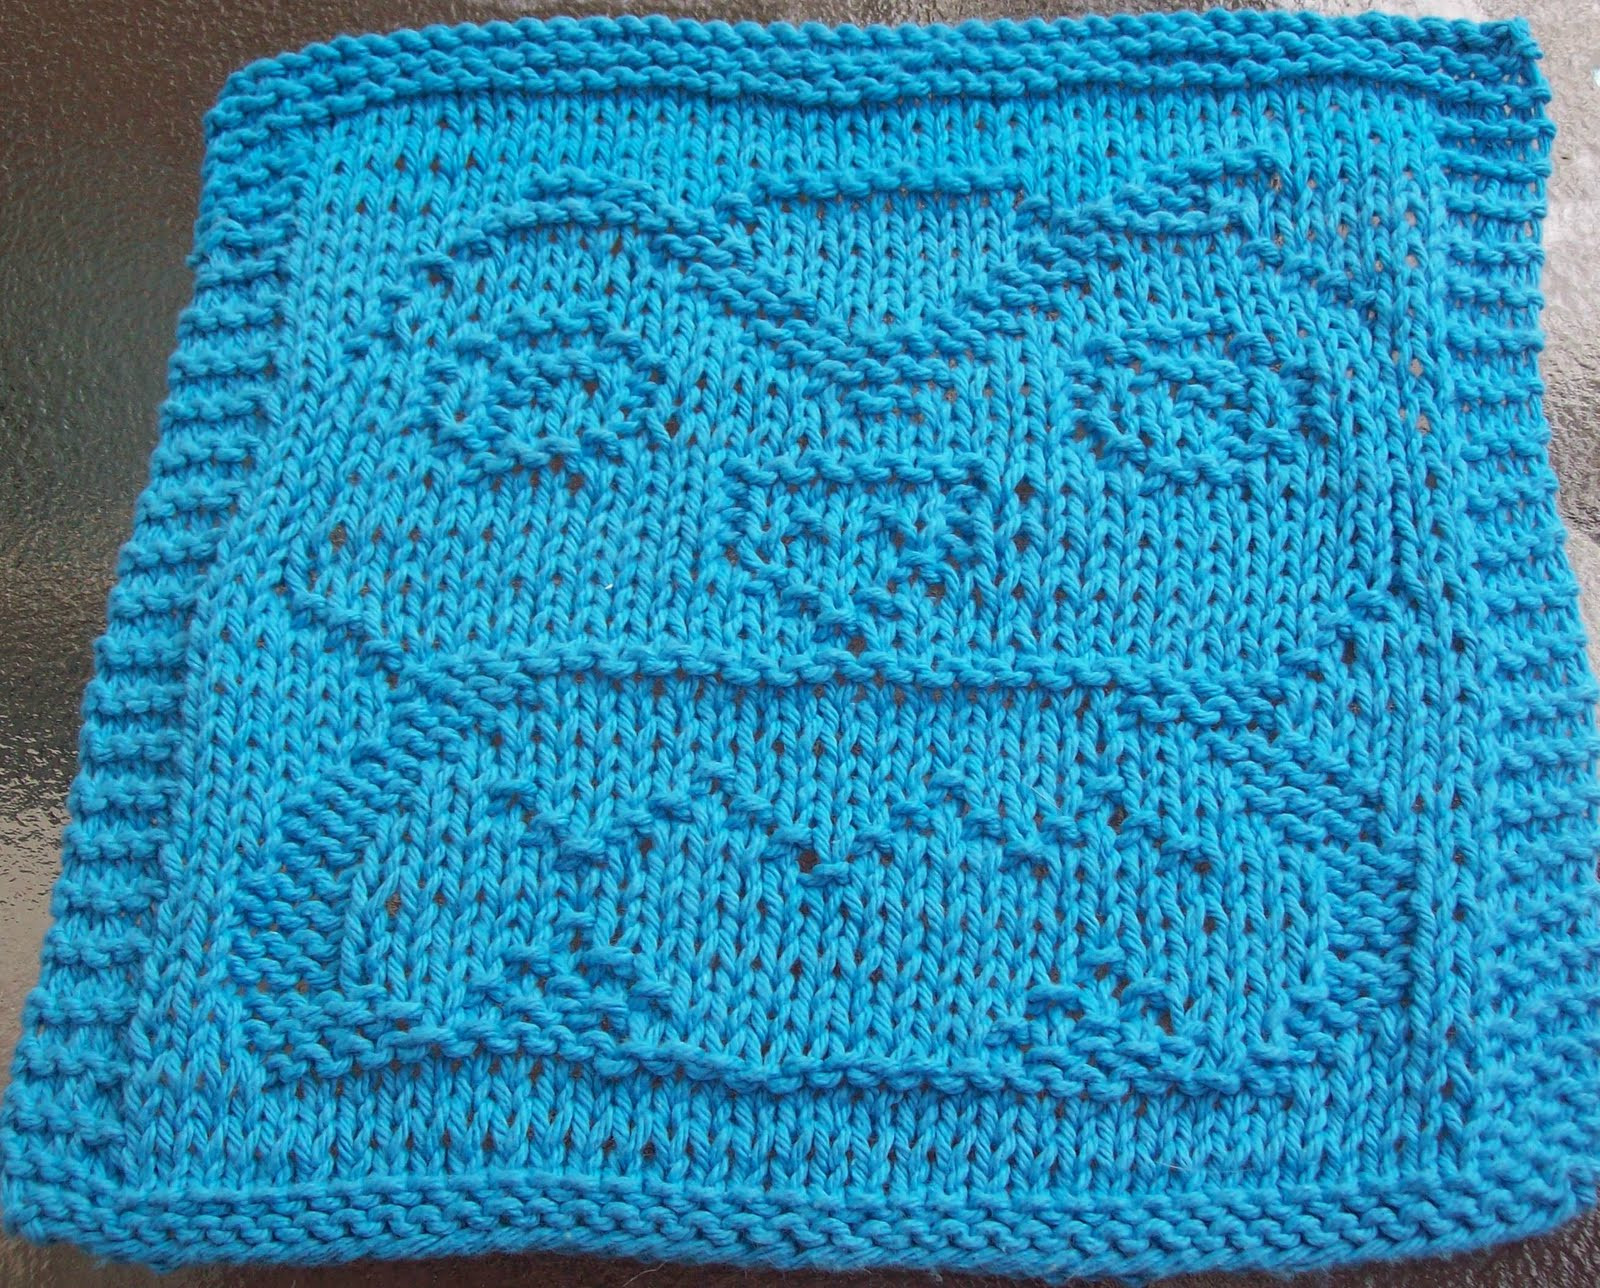 New Knit Patterns for Dishcloths Dishcloth Patterns Of Charming 41 Images Dishcloth Patterns